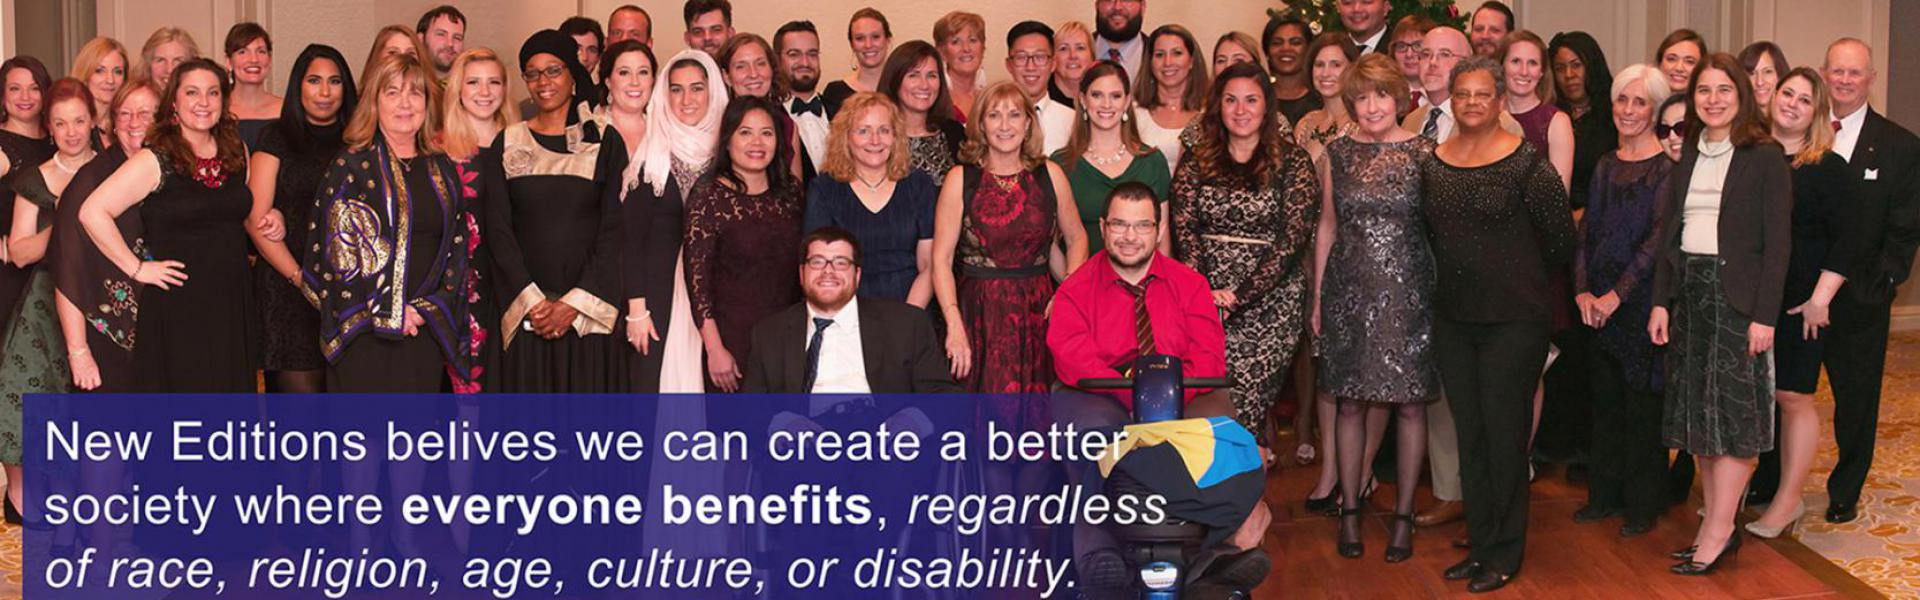 New Editions believes we can create a better society where everyone benefits, regardless of race, religion, age, culture or disability.